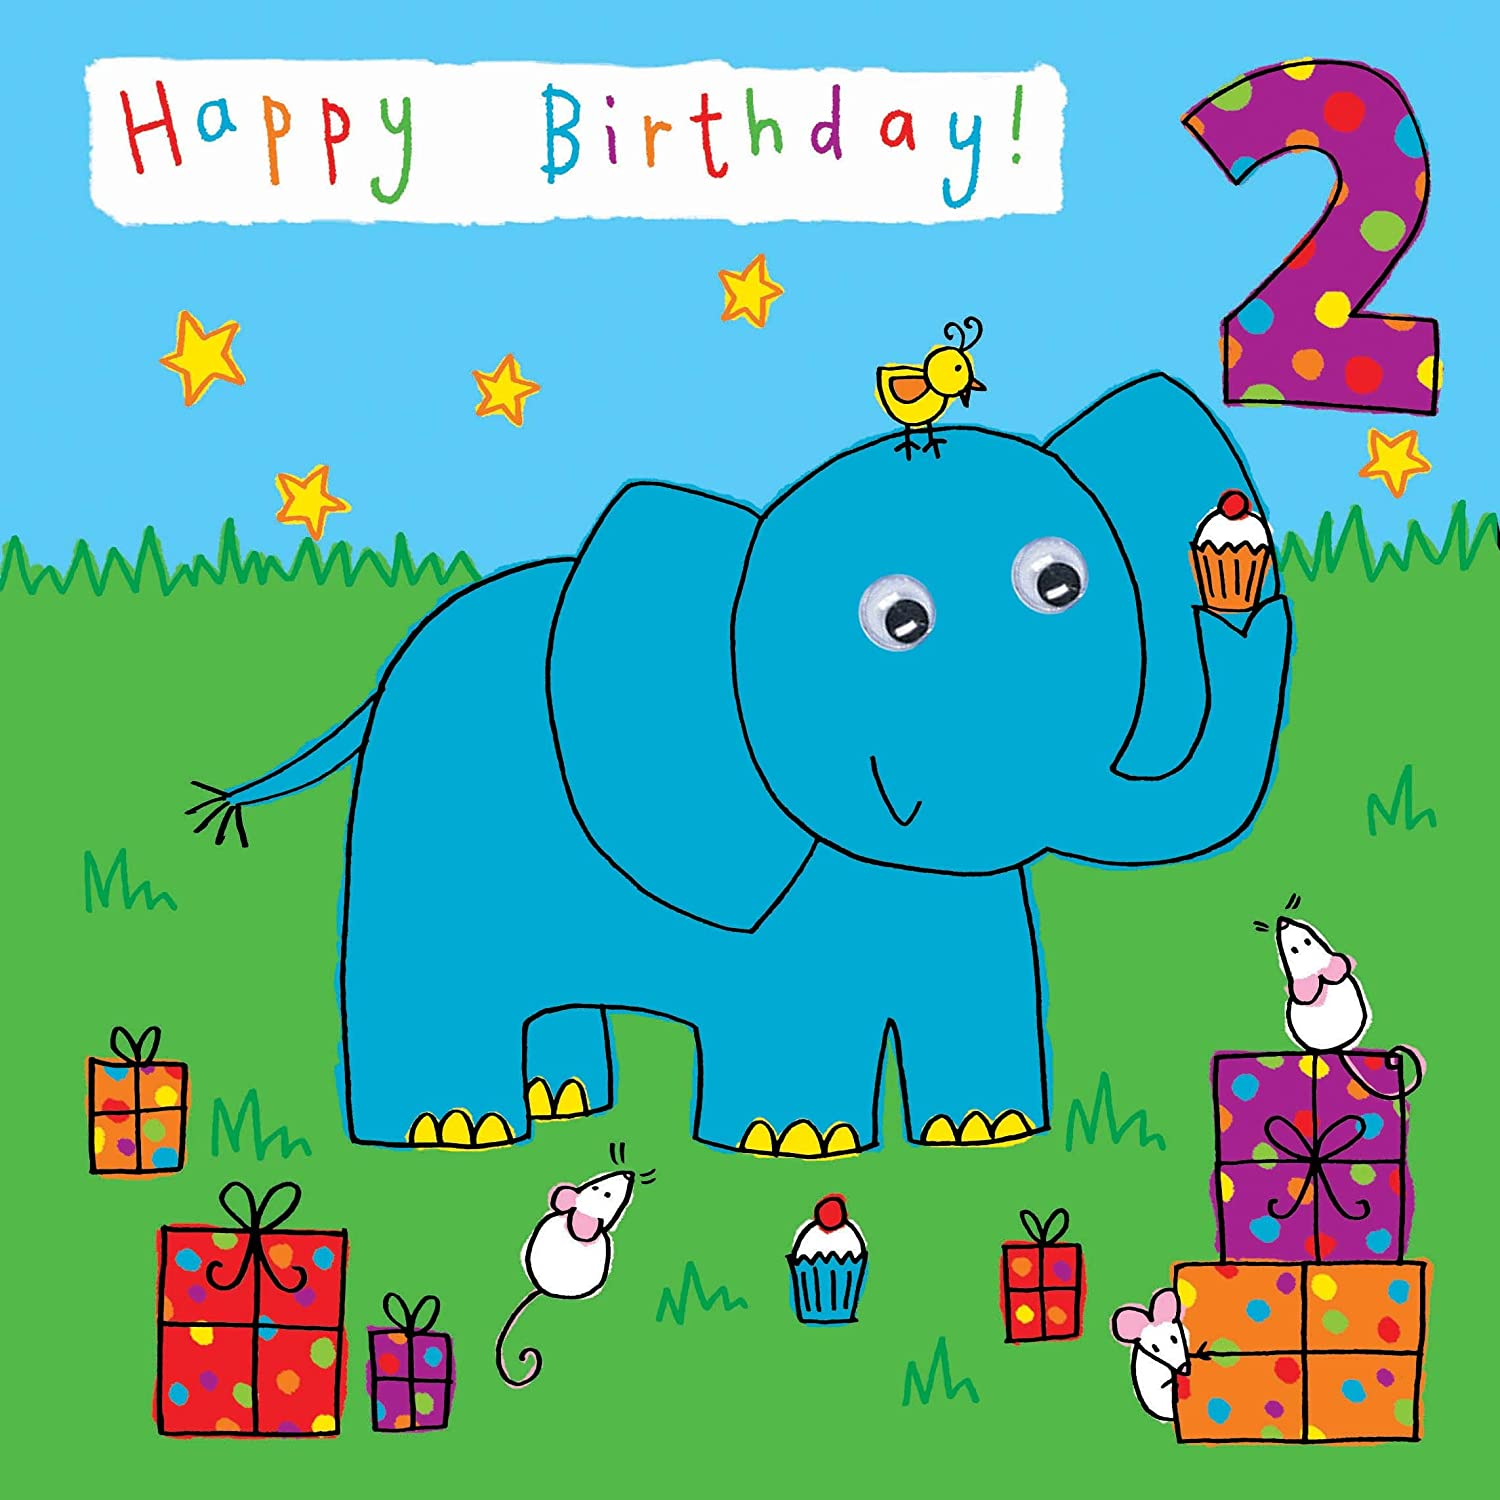 Birthday Cards For 2 Year Old Grandson Free Birthday Cards